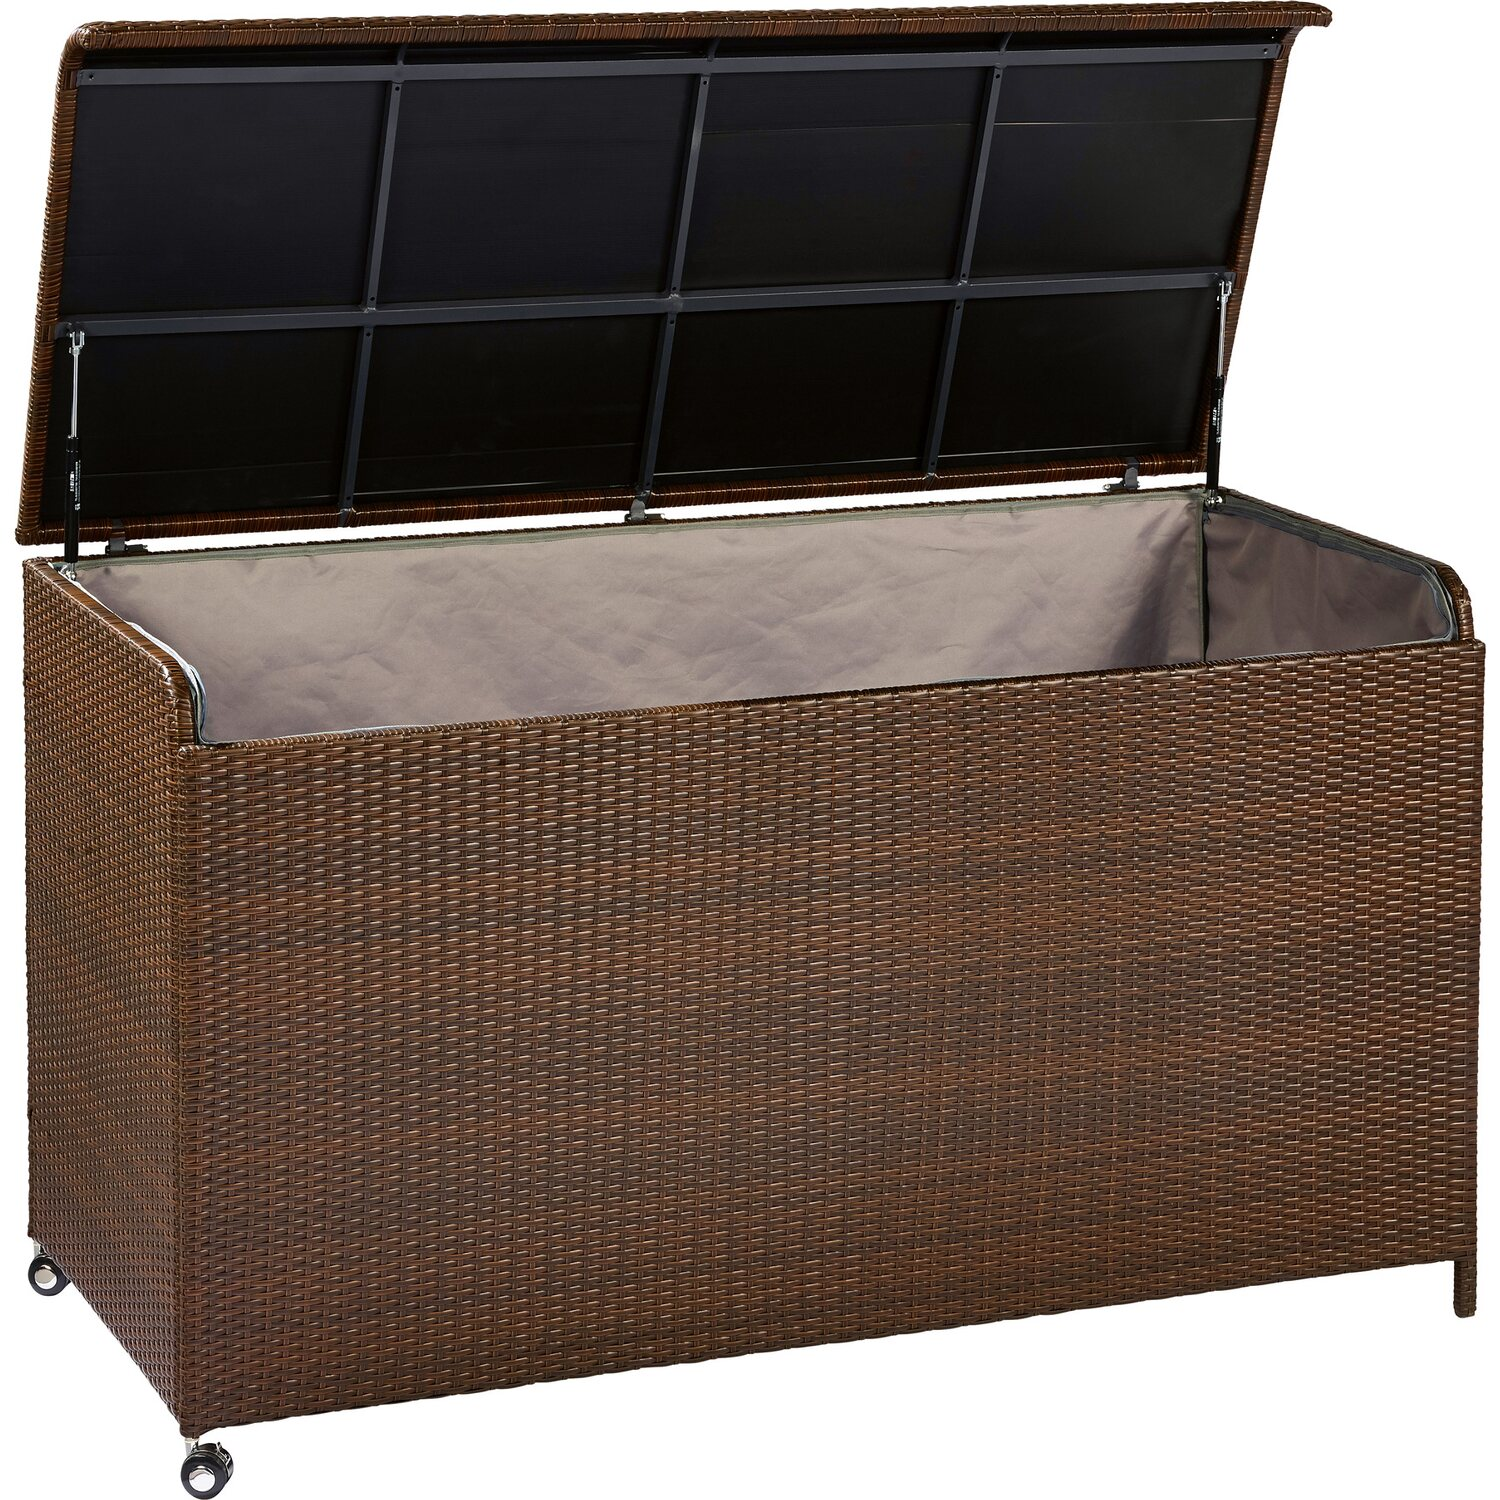 obi kissenbox xxl davenport kaufen bei obi. Black Bedroom Furniture Sets. Home Design Ideas